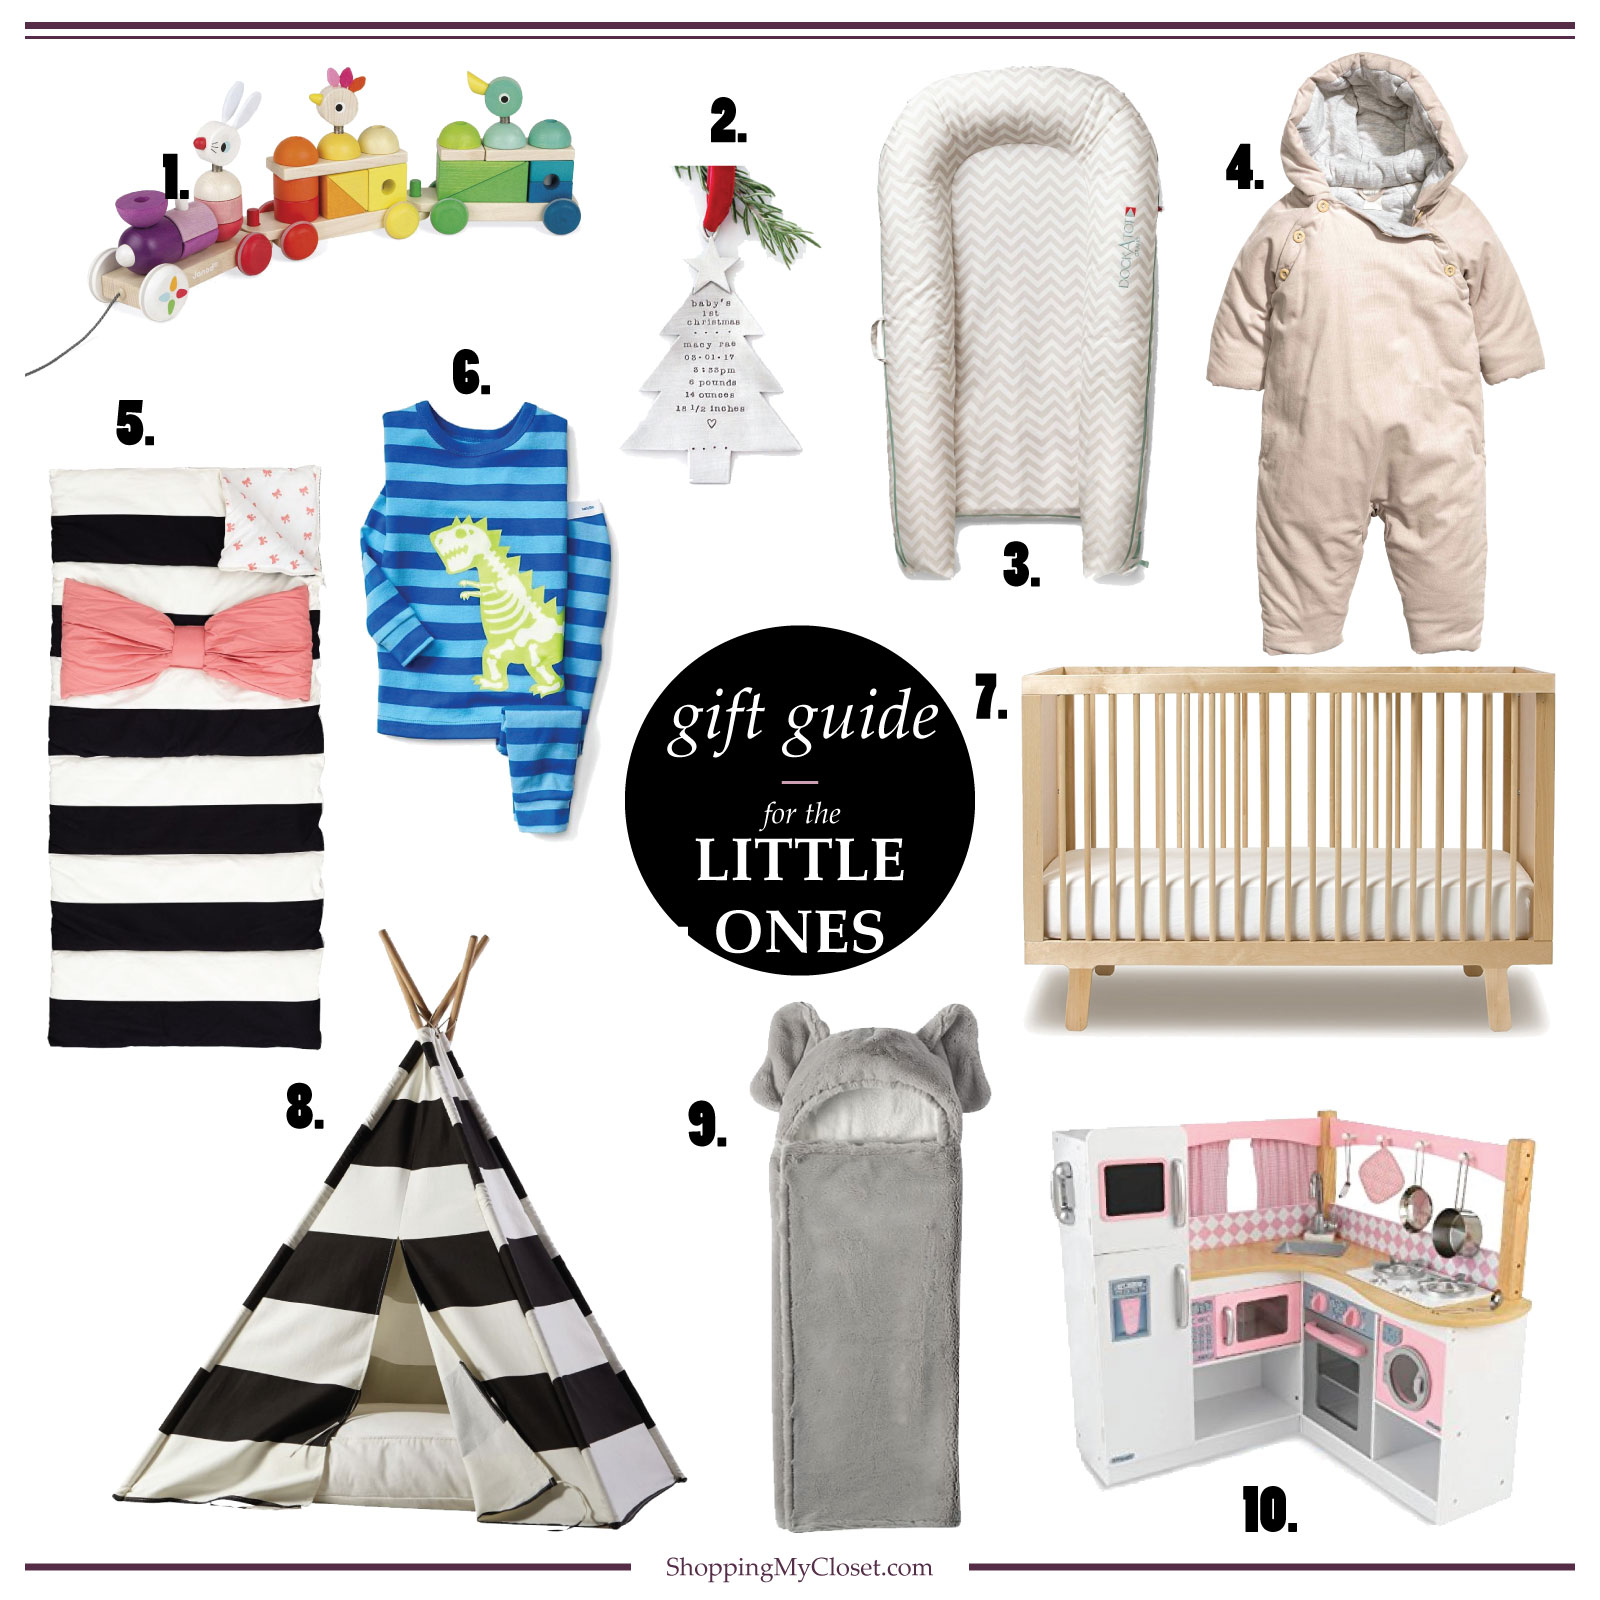 For the little ones (infants, toddlers, kids) {gift guide} | see the full details at www.shoppingmycloset.com #holiday #giftideas